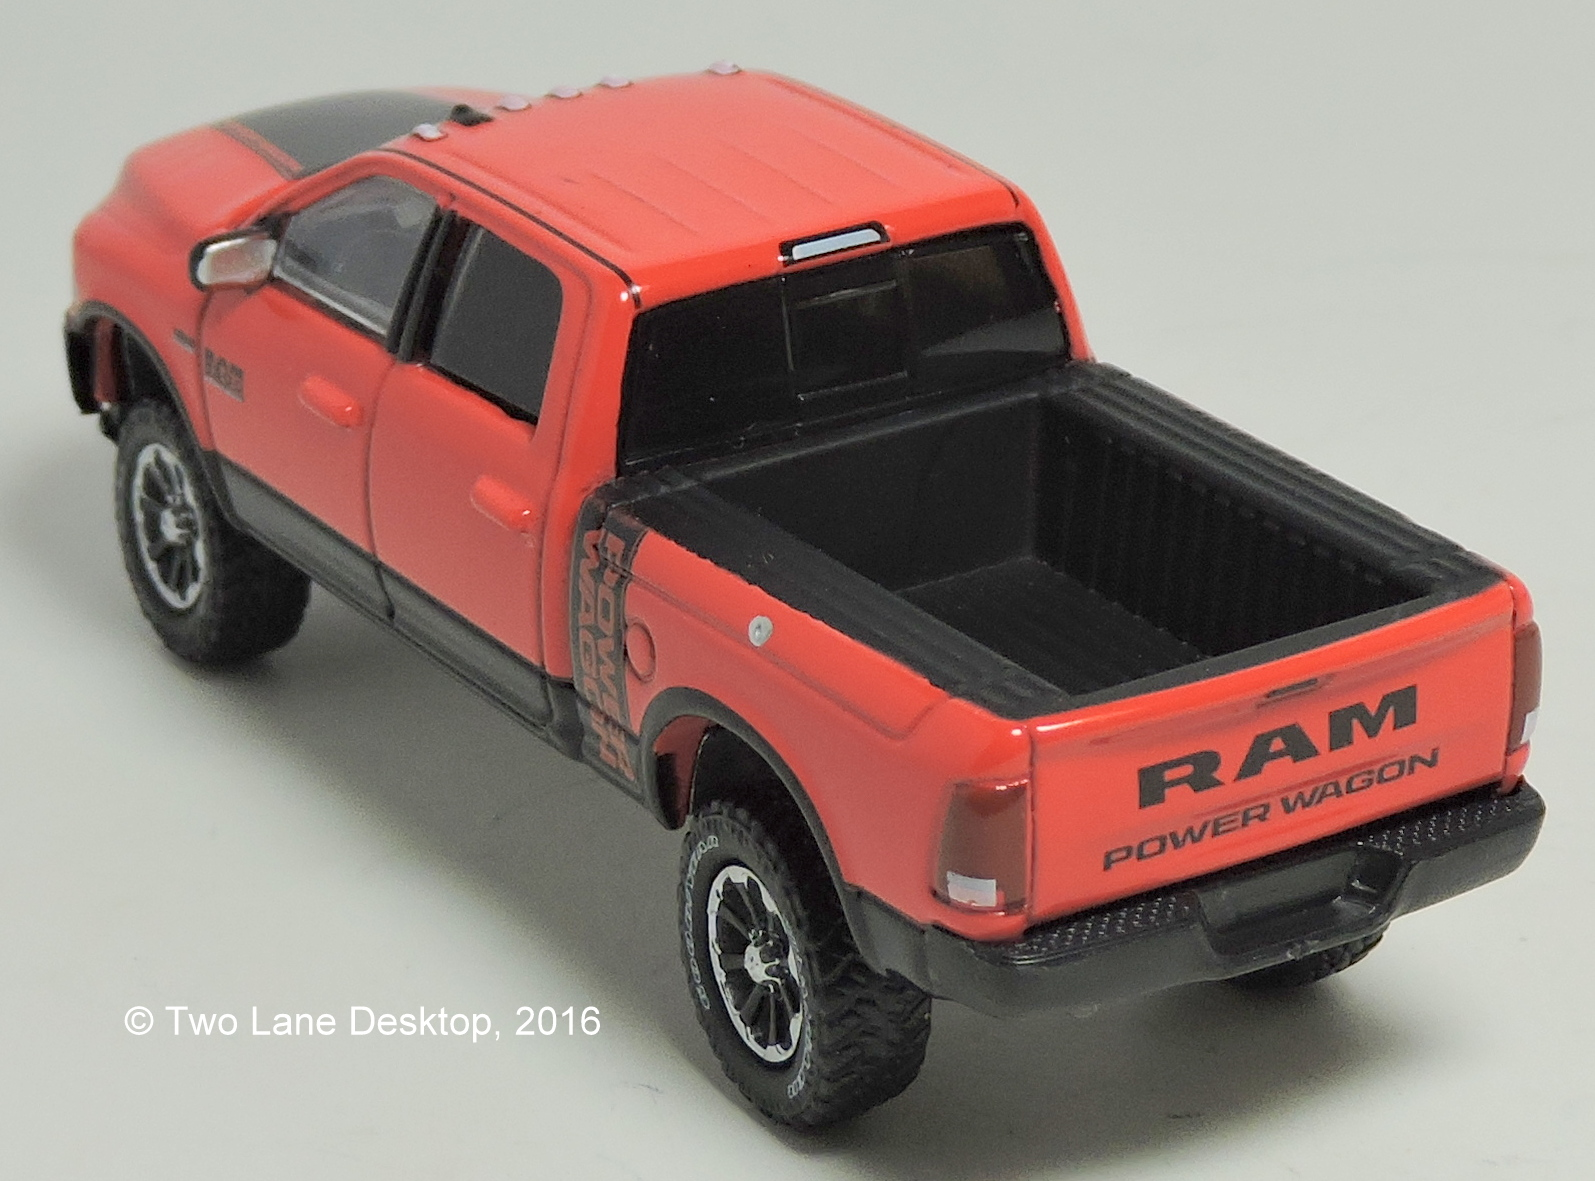 Hot Wheels Power Wagon : Two lane desktop hot wheels and greenlight